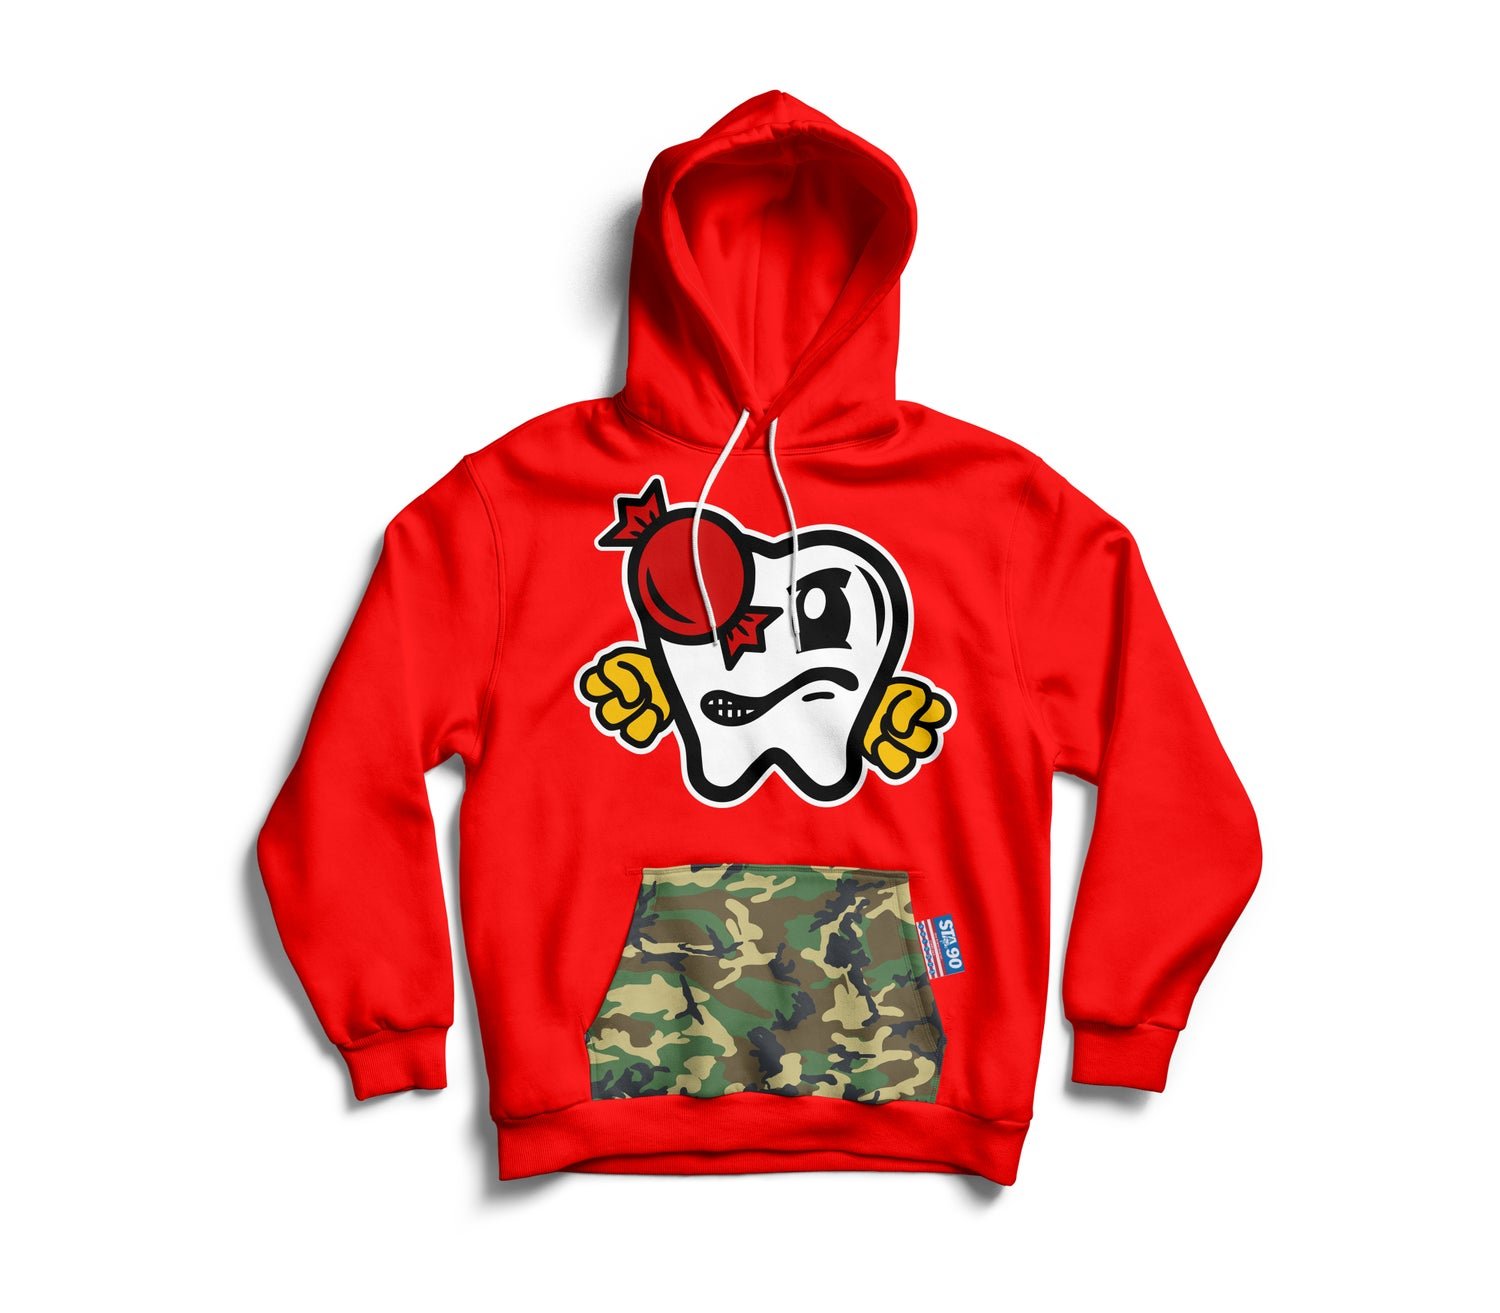 Image of OG VITAS HOODY RED W/ CAMO